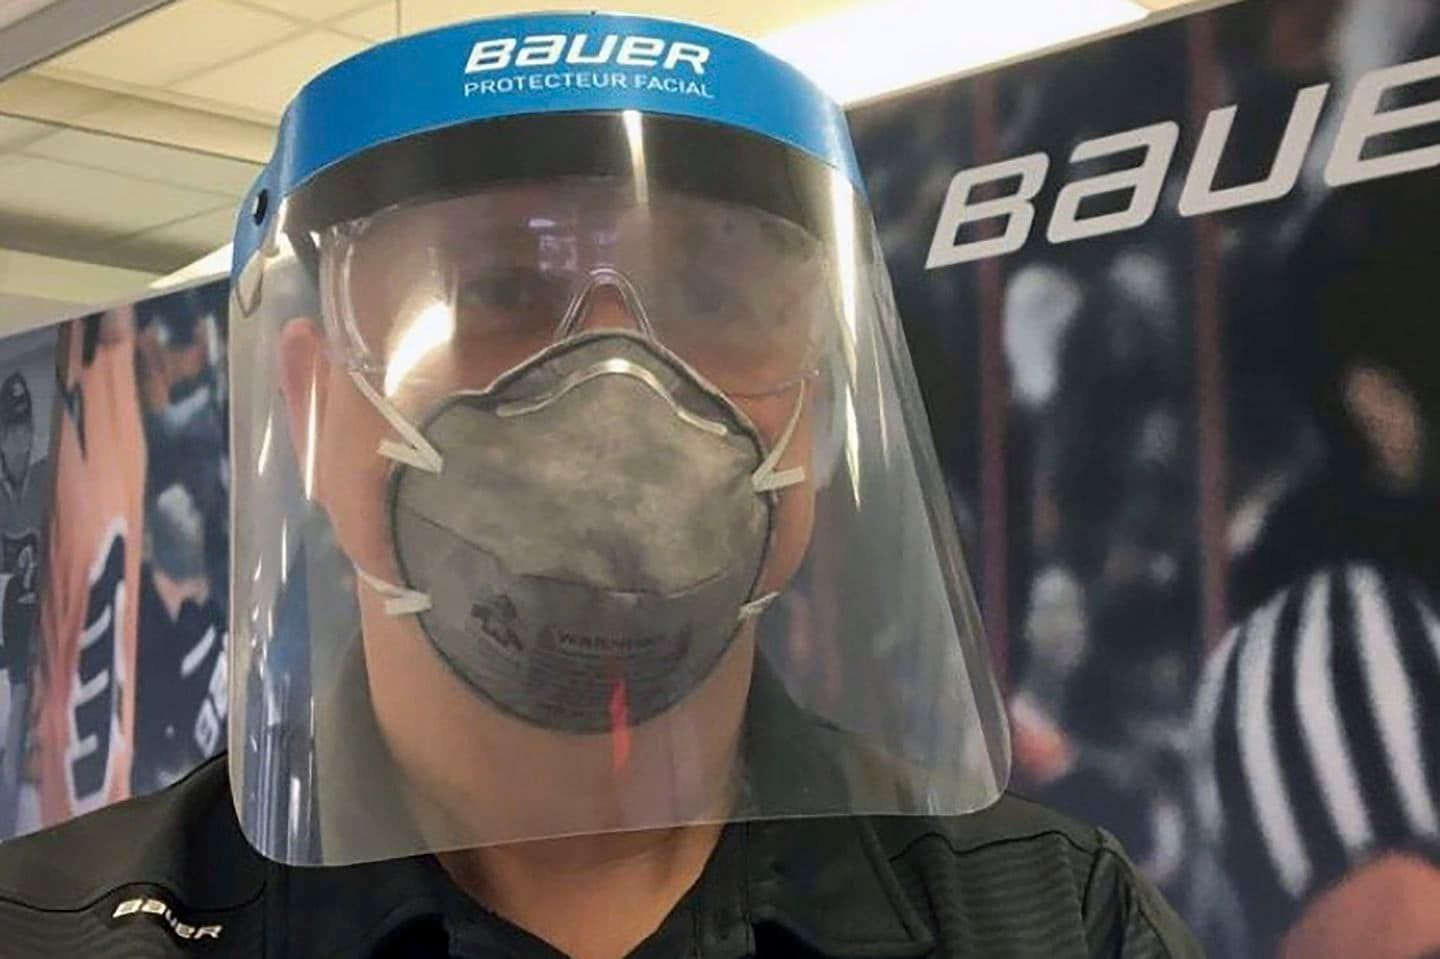 A Sports Company Started Making Medical Gear Instead Of Hockey Visors It Wants Others To Help In 2020 Hockey Equipment Hockey Visors